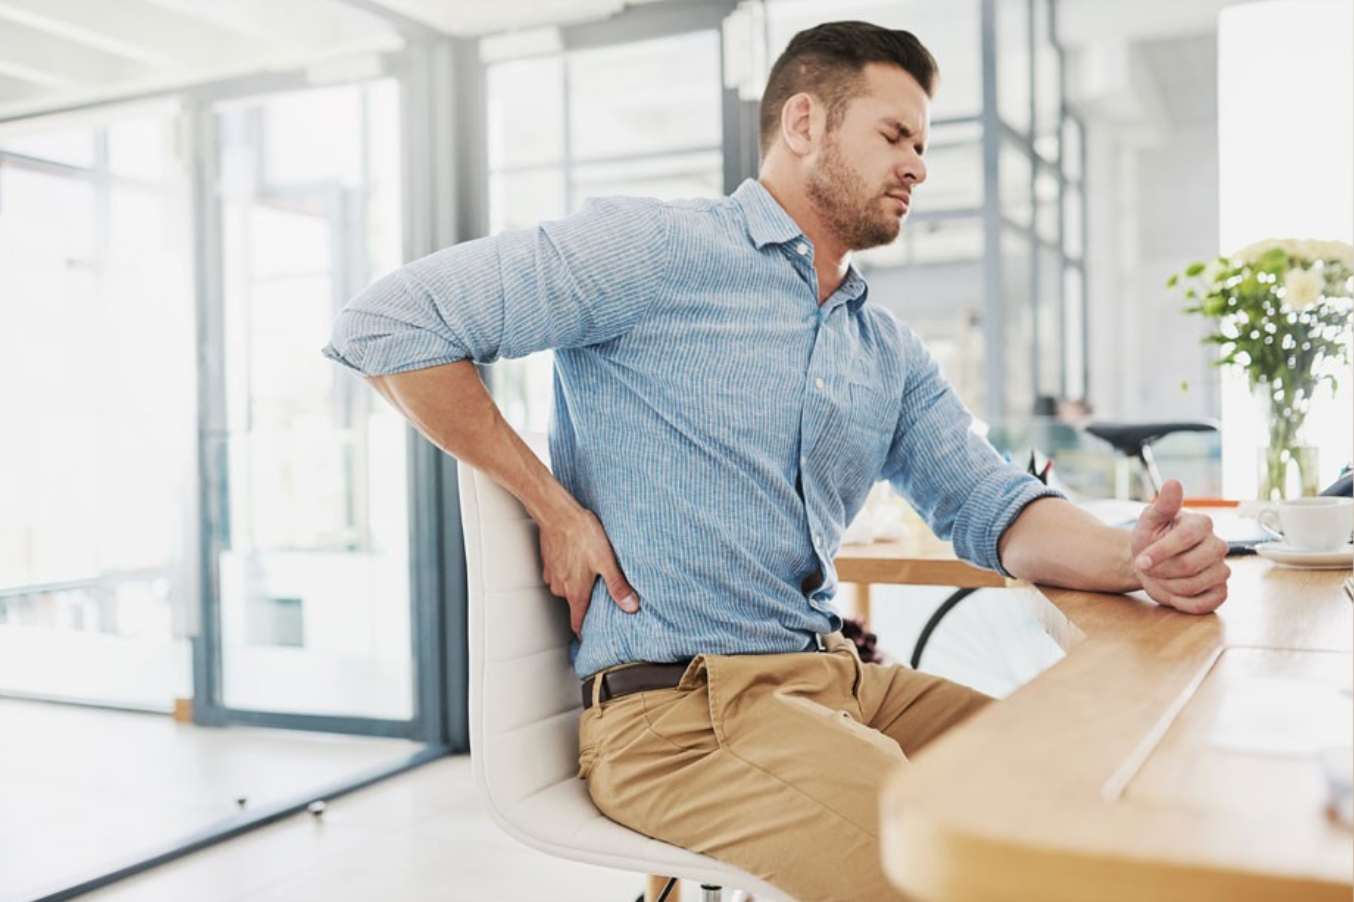 Back pain is associated with poor posture